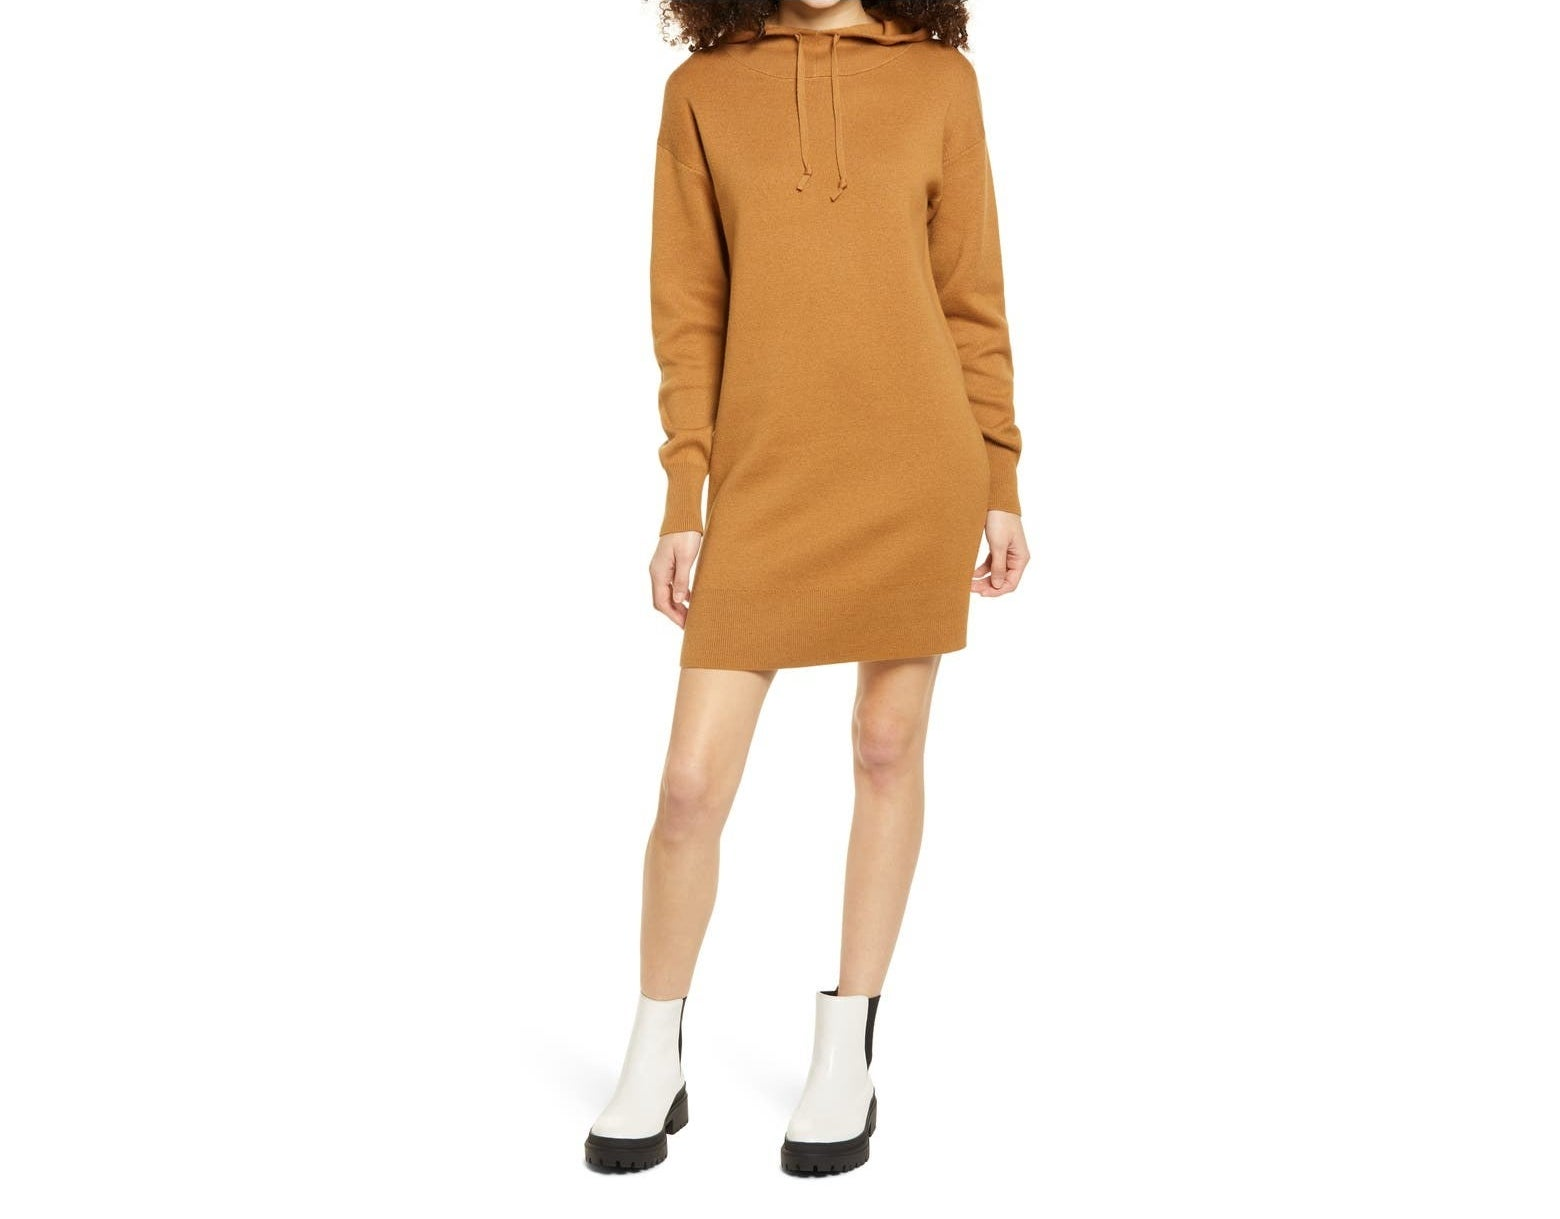 Model wearing the mustard dress with white lug sole boots